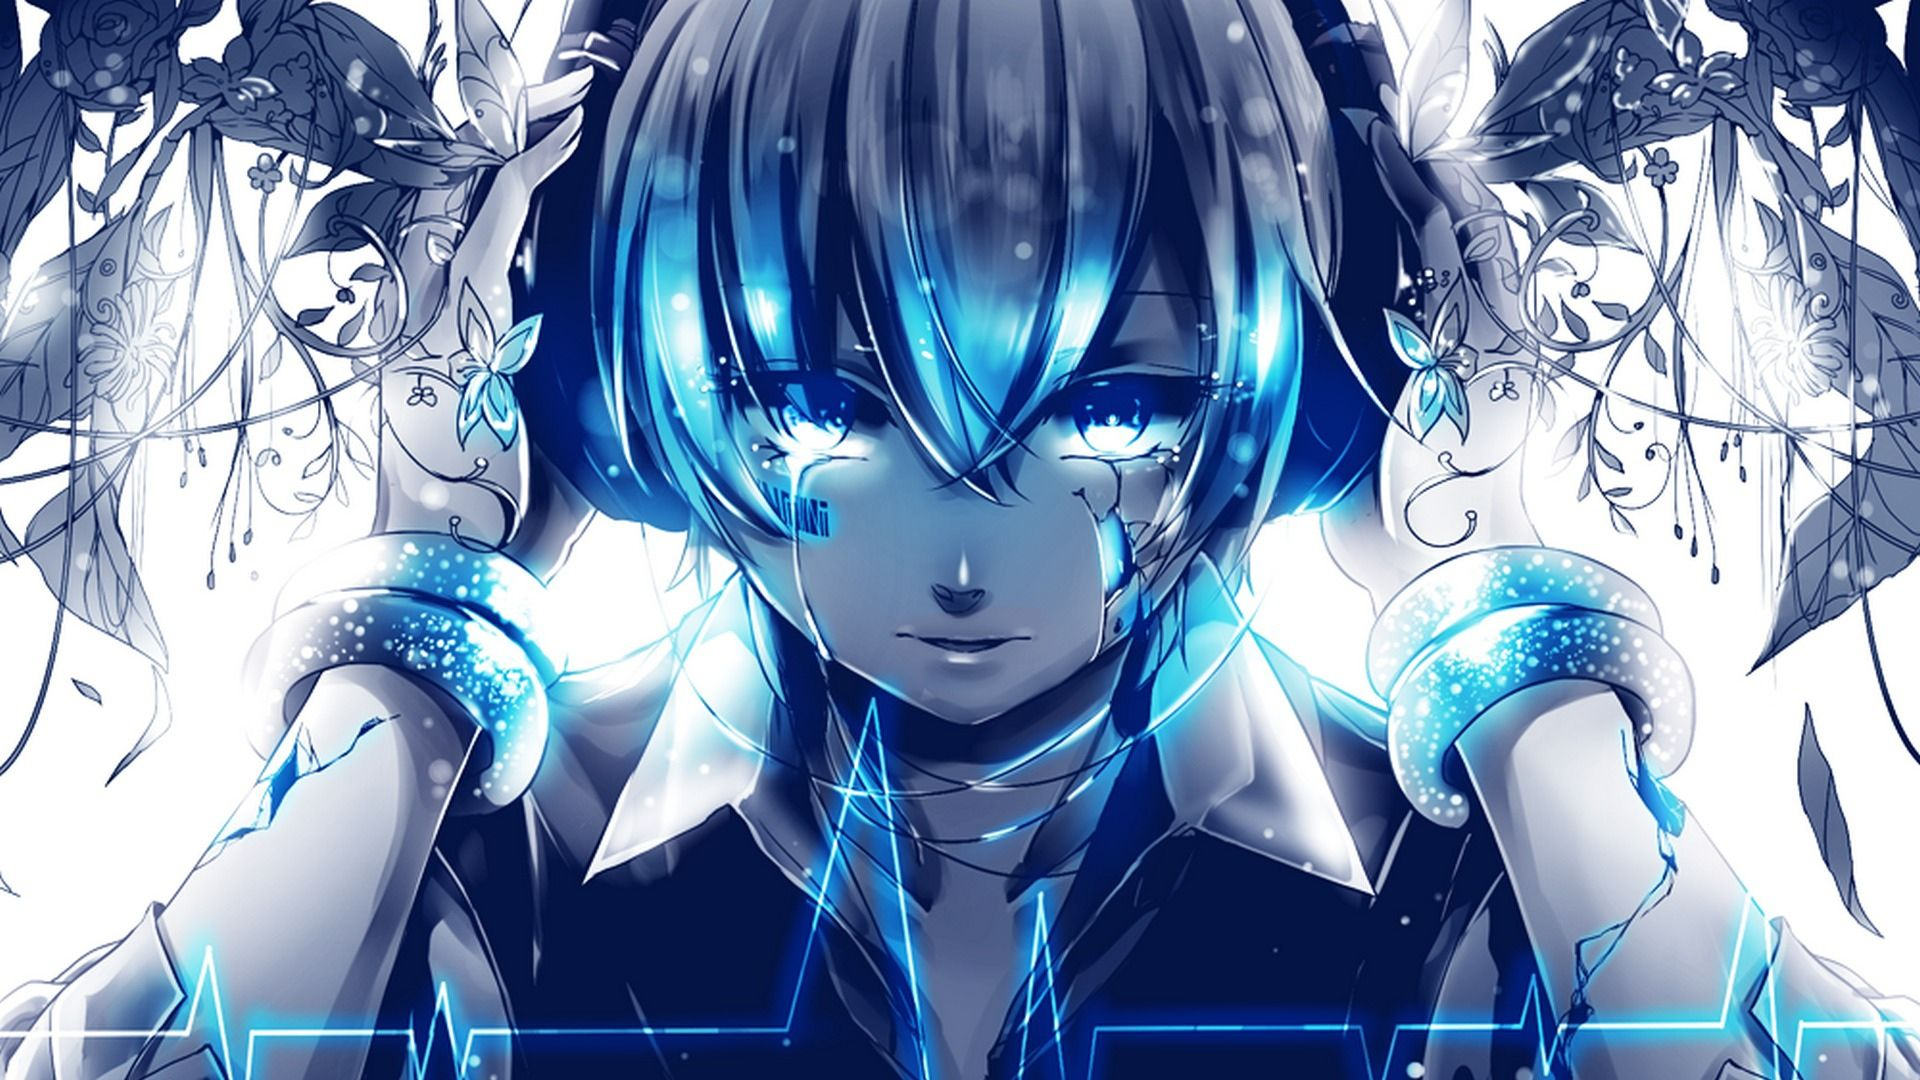 Free Vocaloid Wallpapers Download | Wallpapers, Backgrounds .